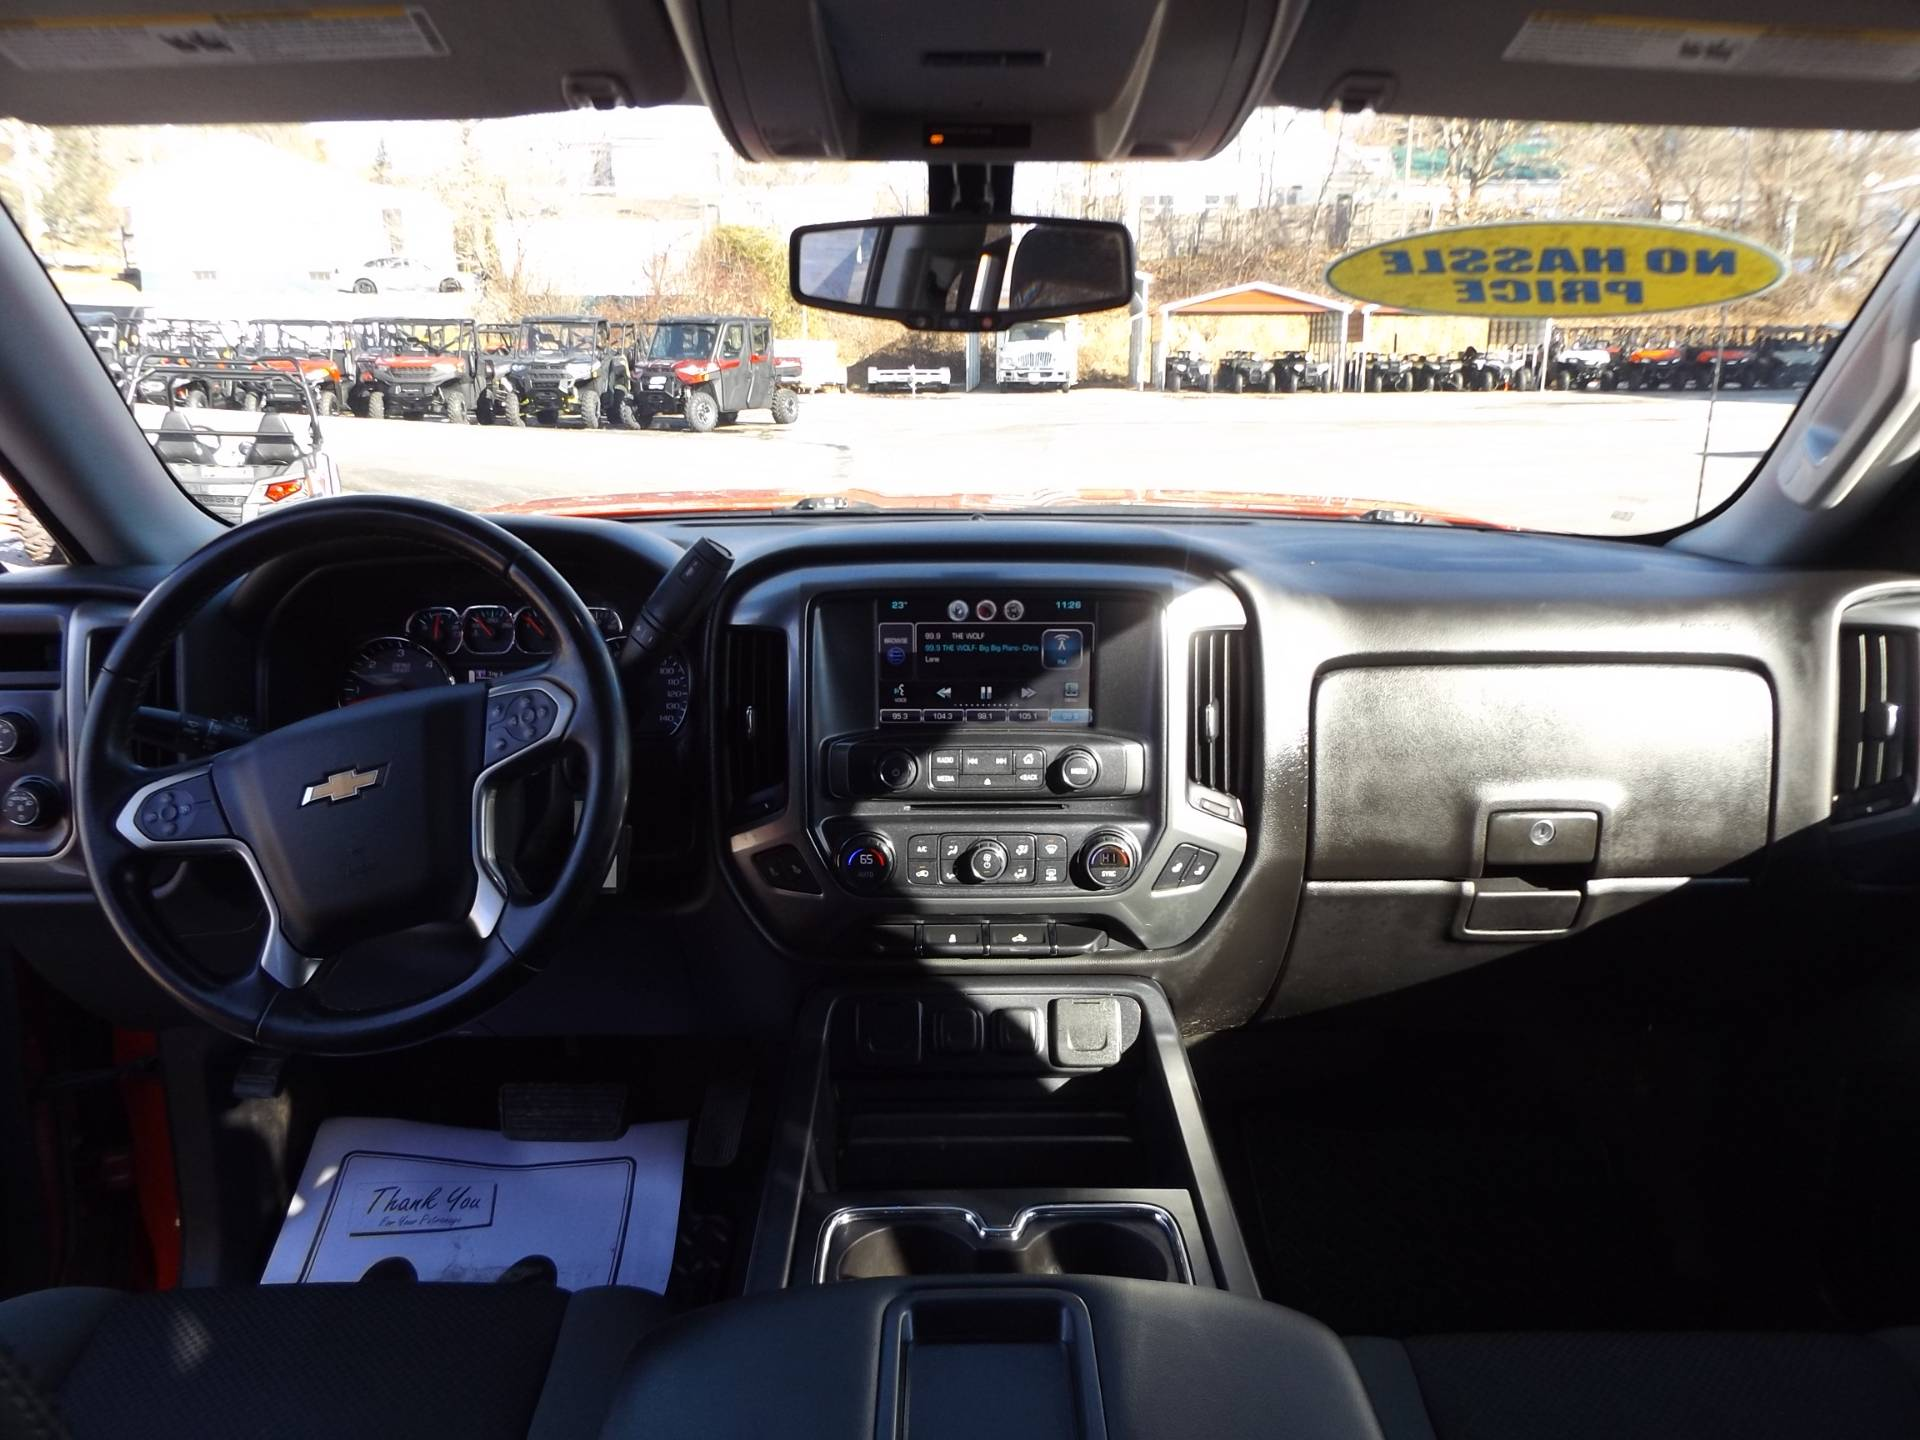 2014 Chevrolet Silverado in Lewiston, Maine - Photo 8